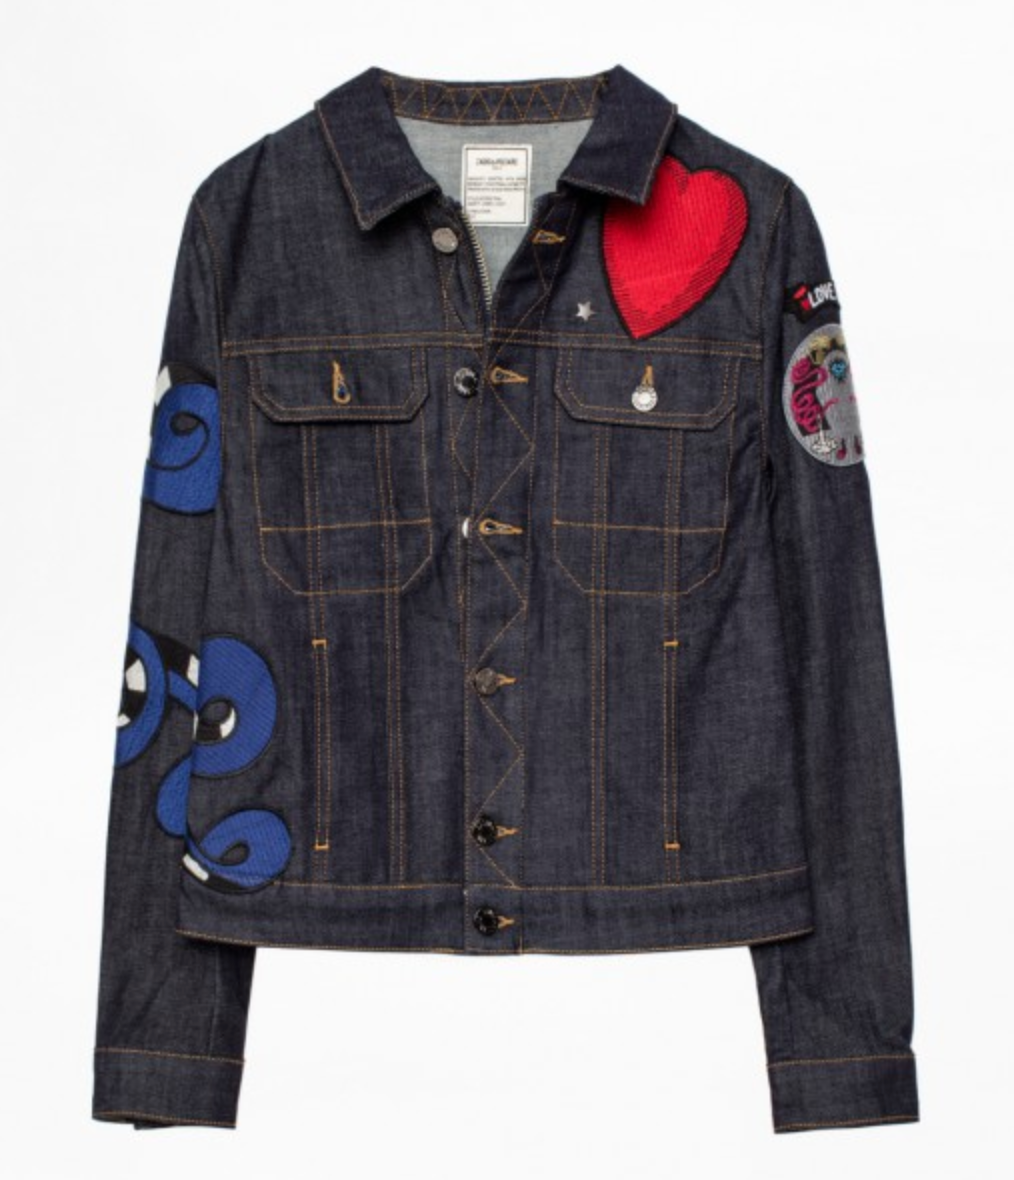 Kioky Brode Embroidered - Denim